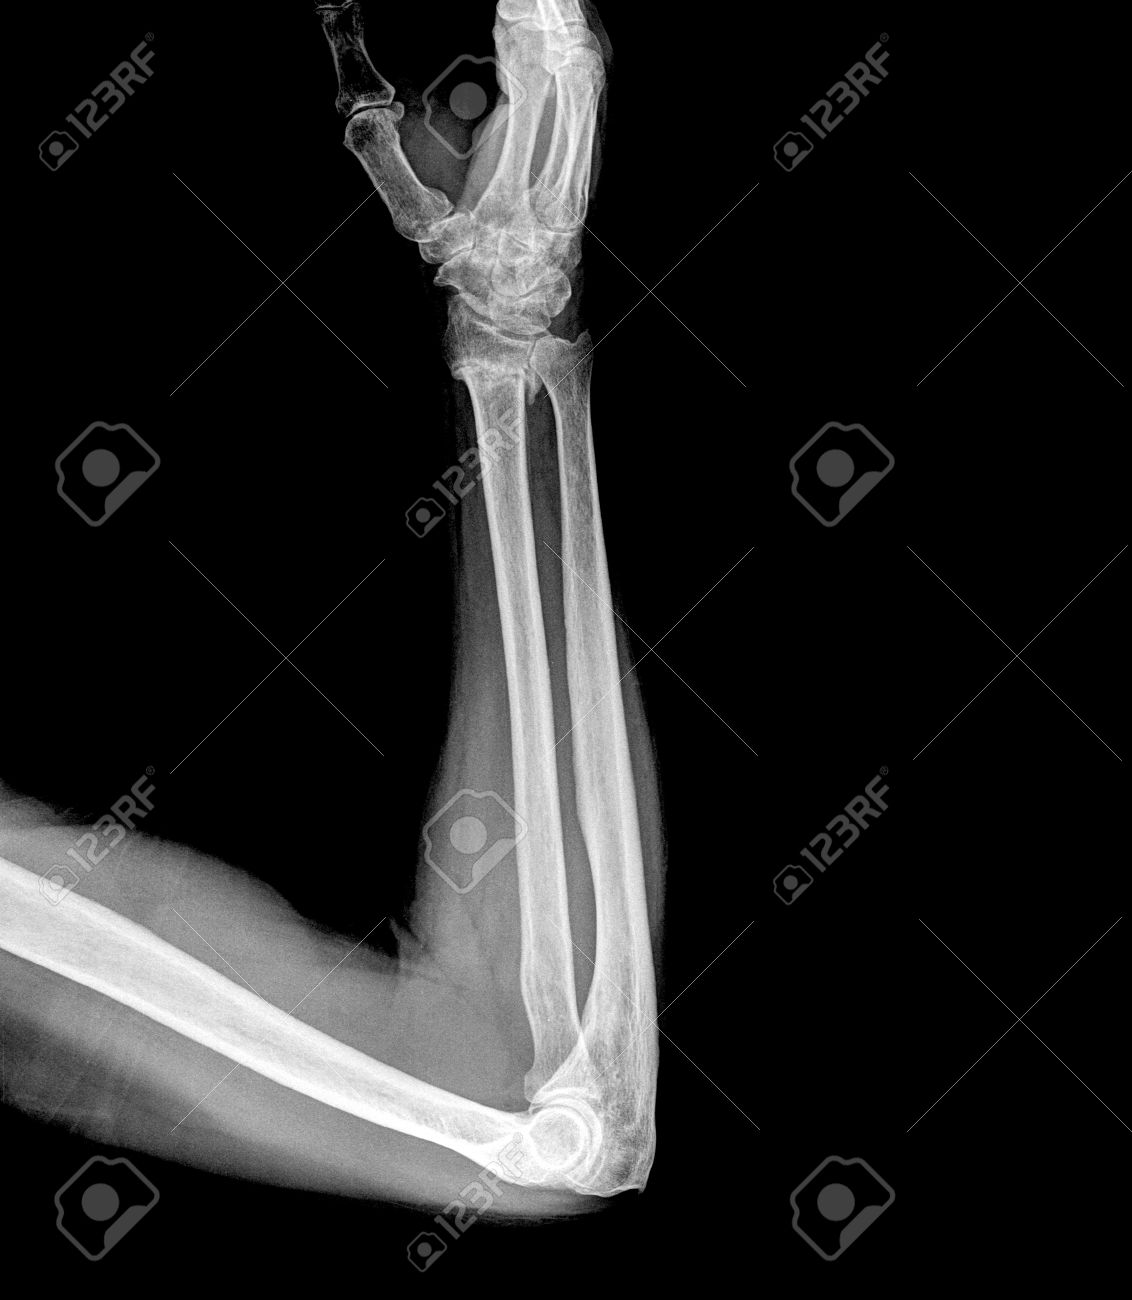 X Ray Image Of Broken Human Elbow Stock Photo, Picture And Royalty ...